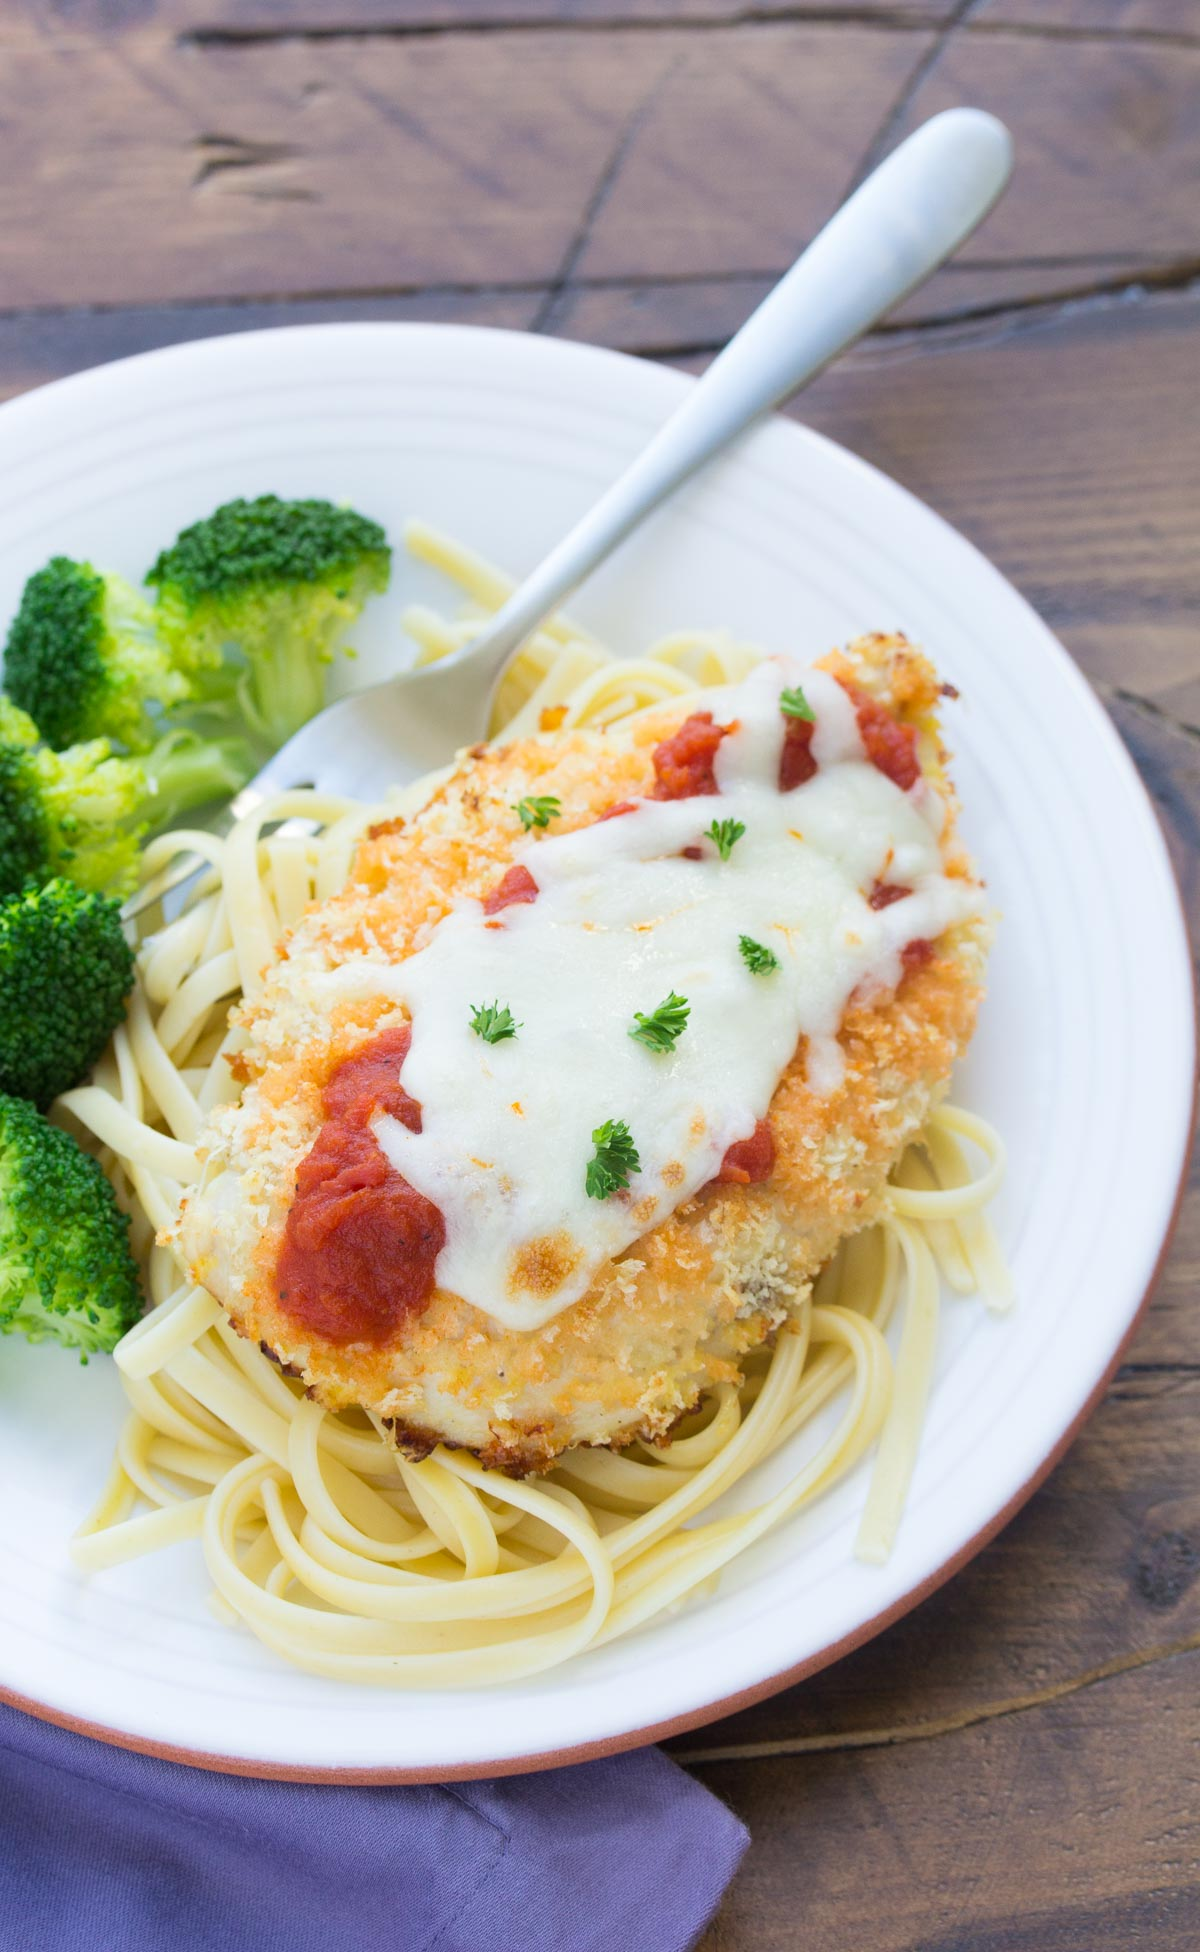 Lightened Up Baked Chicken Parmesan with linguine pasta and broccoli is an easy 30 minute meal! | www.kristineskitchenblog.com